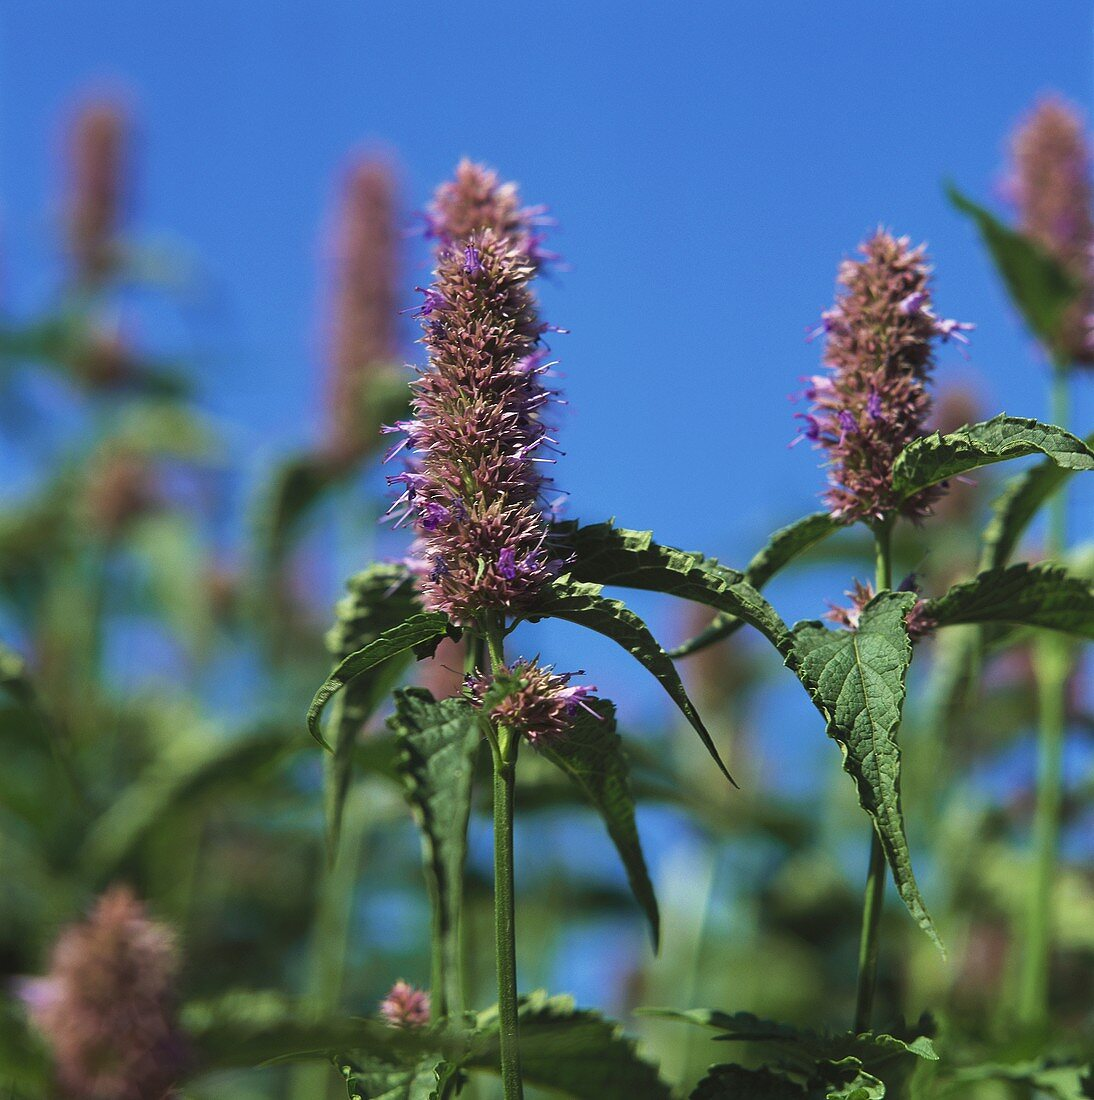 Anise hyssop (Agastache officinalis) with flowers